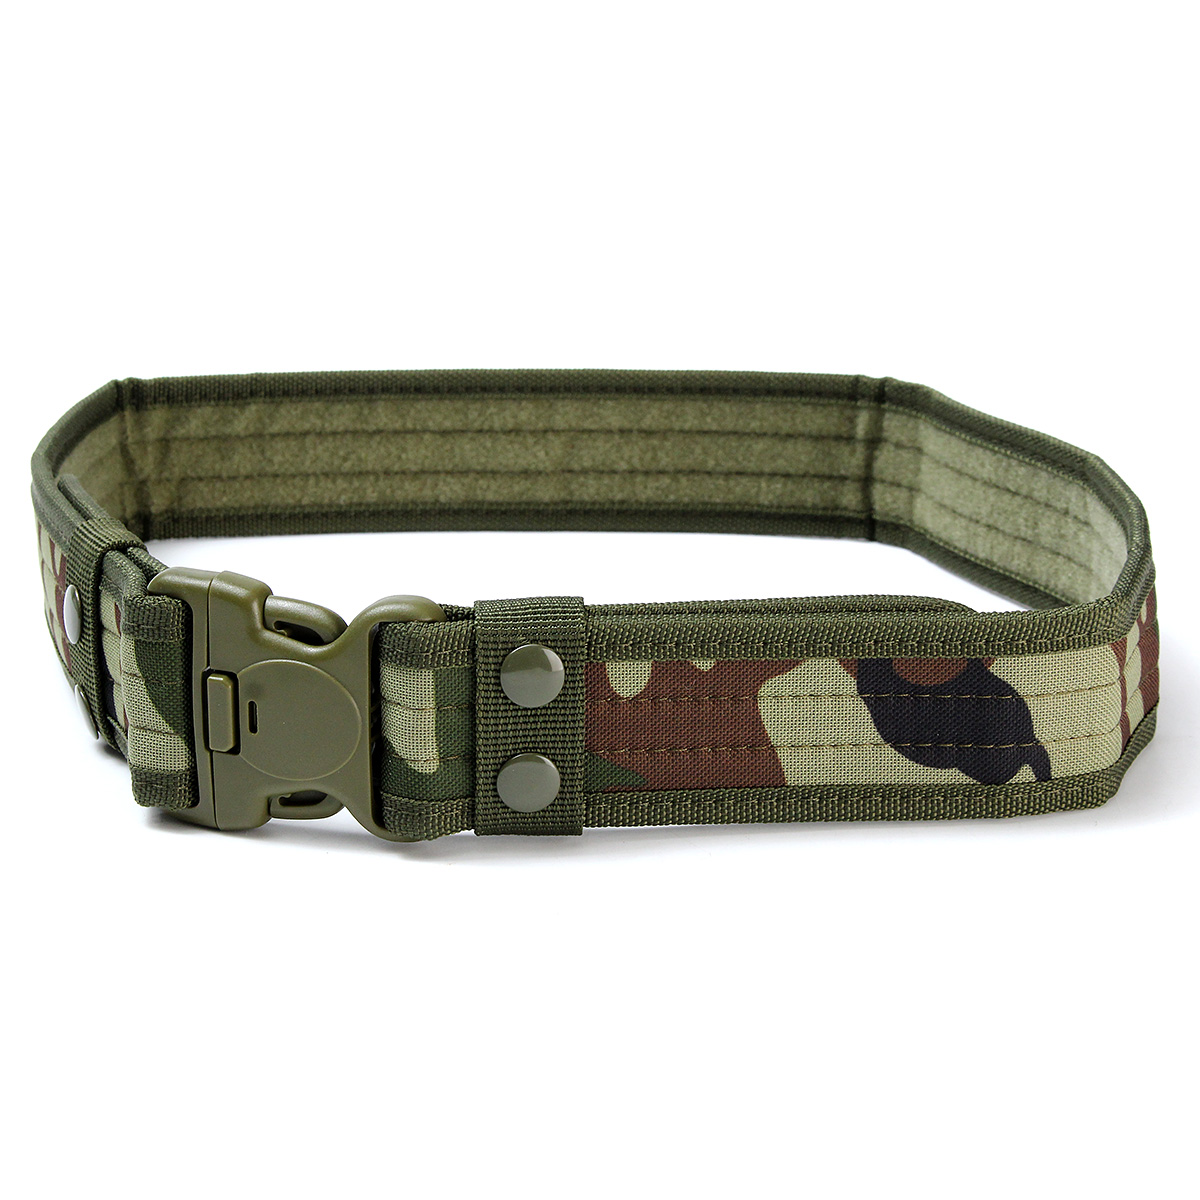 130CM Mens Military Army Tactical Belt Swat Combat Hunting Outdoor Sports Belt